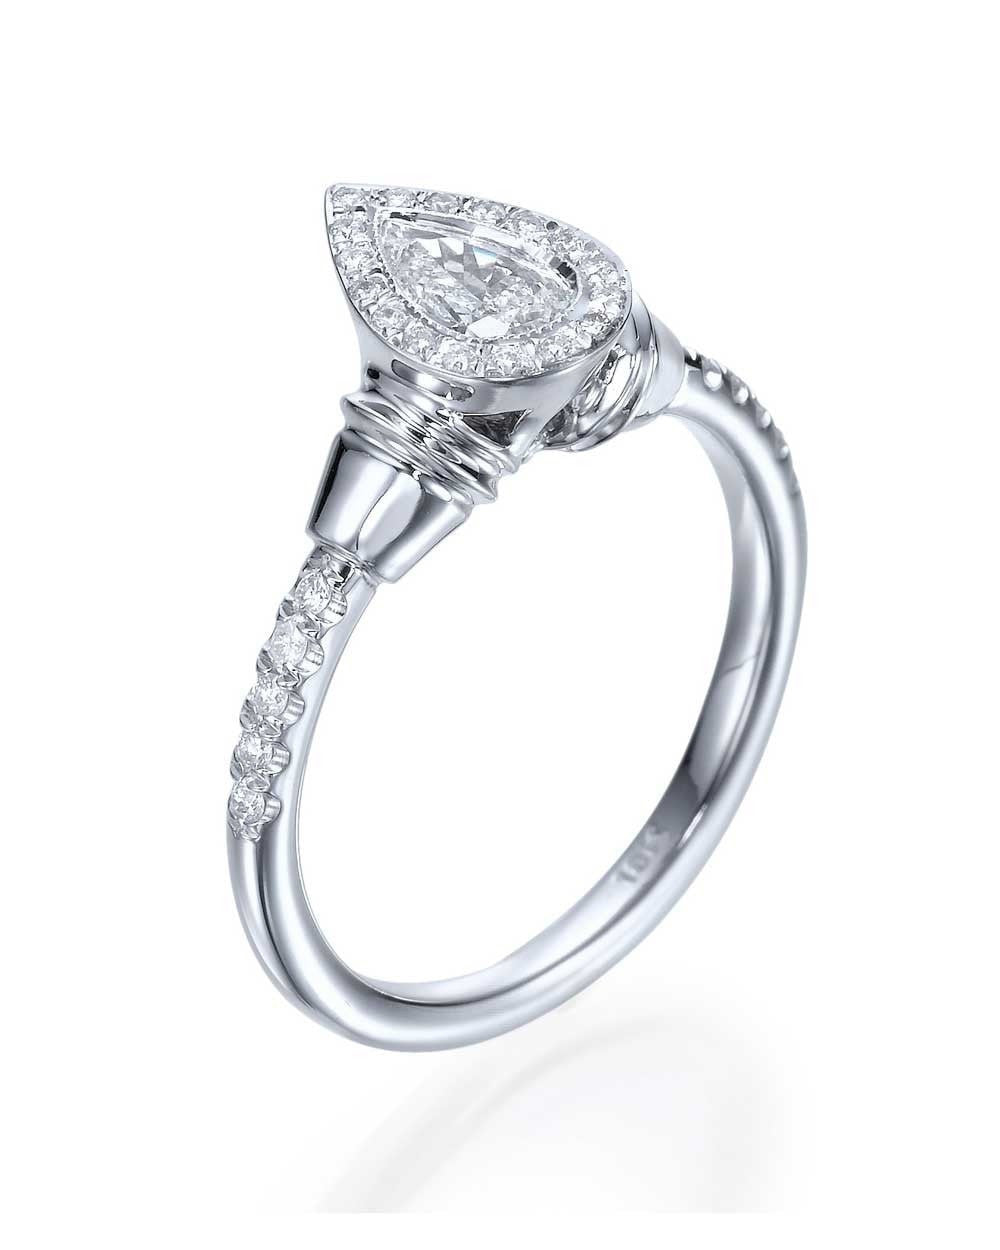 Engagement Rings Pear Shaped Vintage Engagement Ring - 0.65ct Halo Design